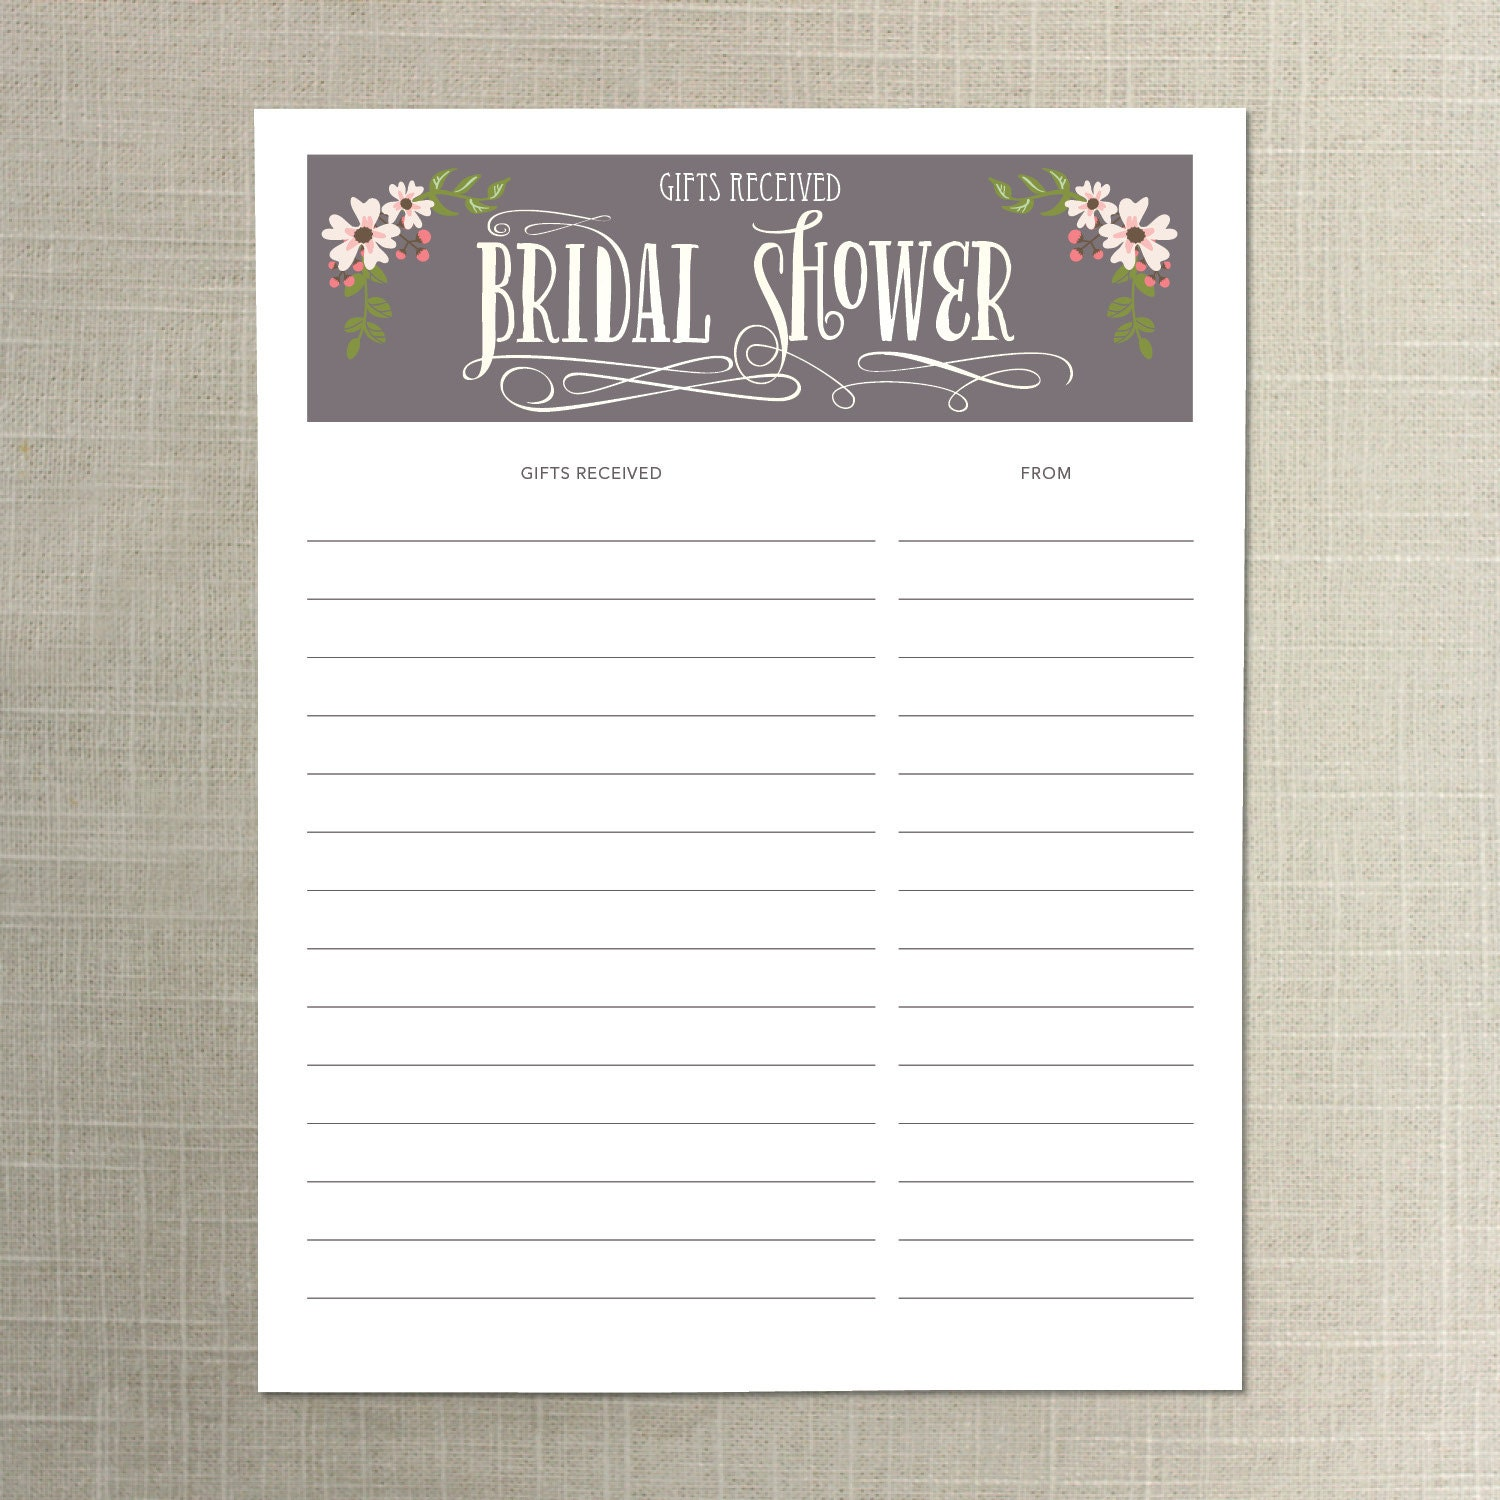 Bridal Shower Gift Record Template : Instant Download Bridal Shower Gift List Gifts Received